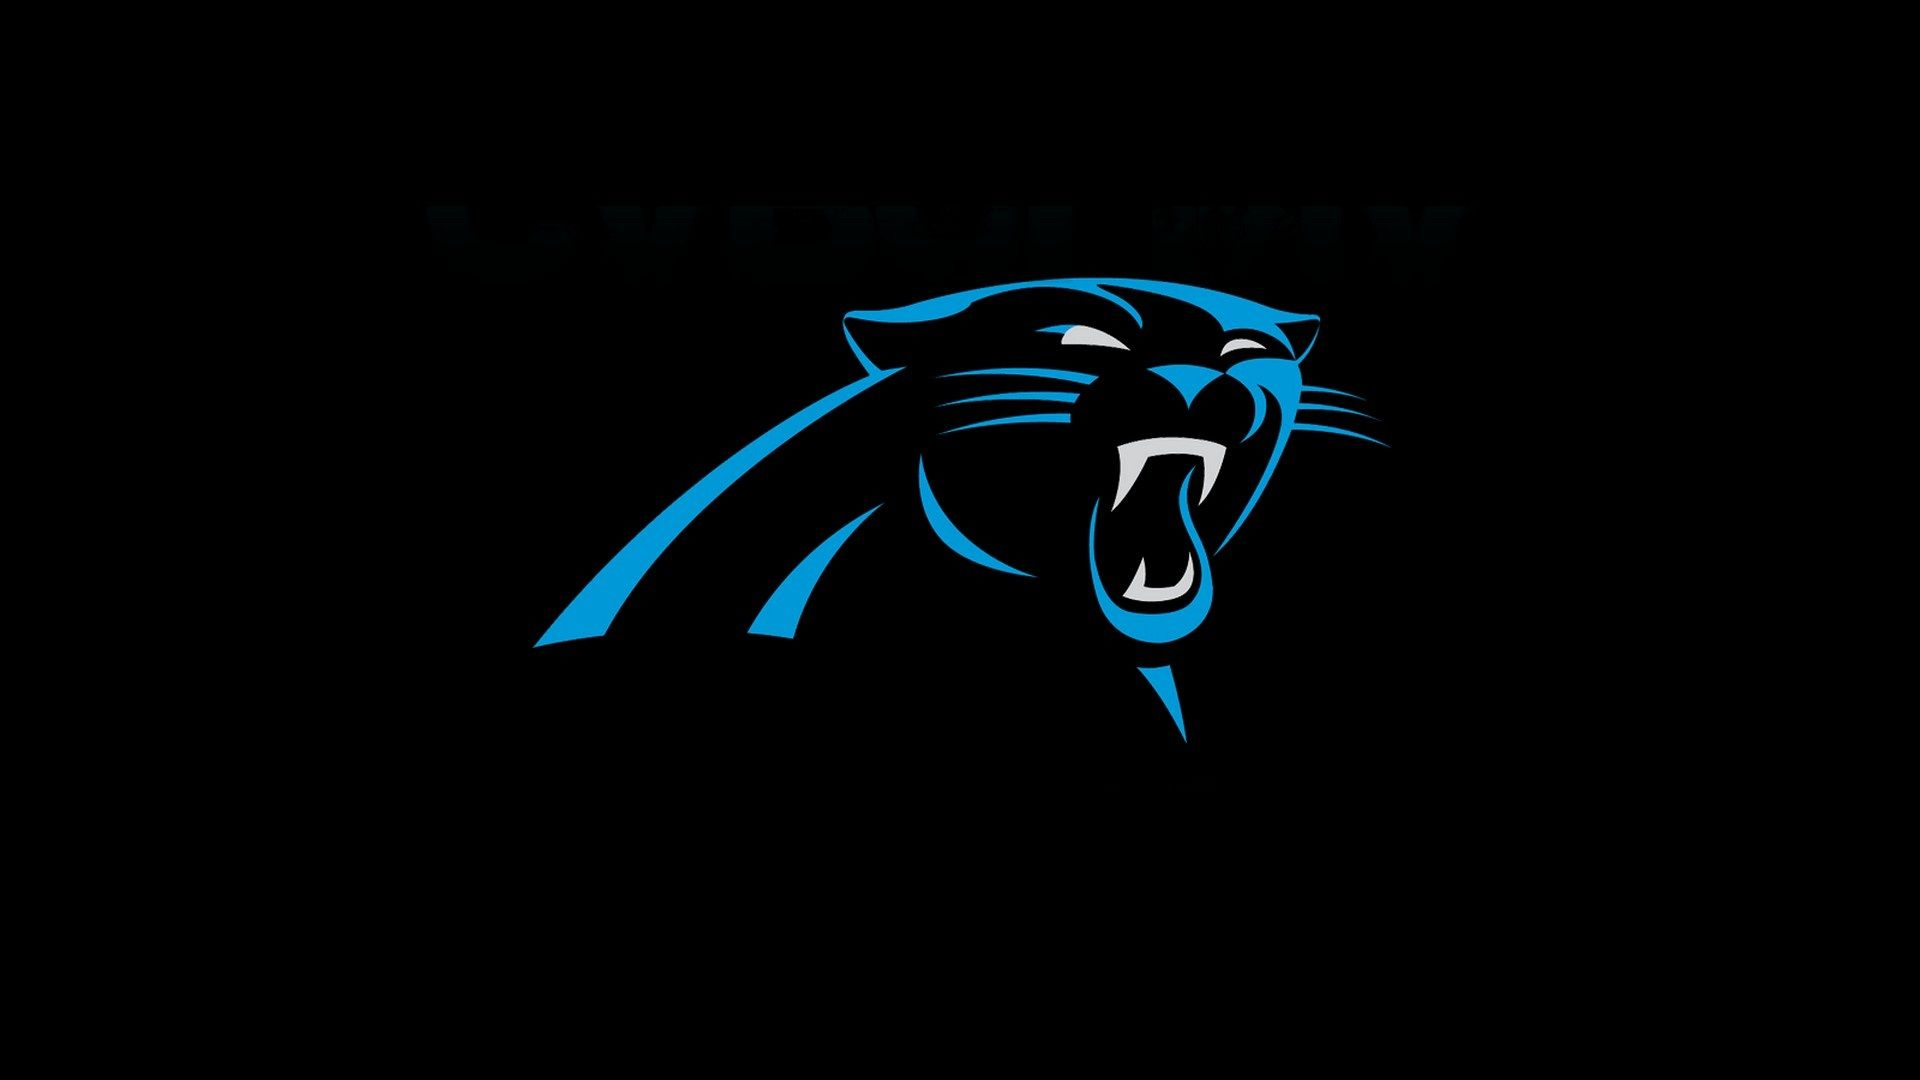 Carolina Panthers Wallpaper HD Wallpapers Carolina panthers 1920x1080